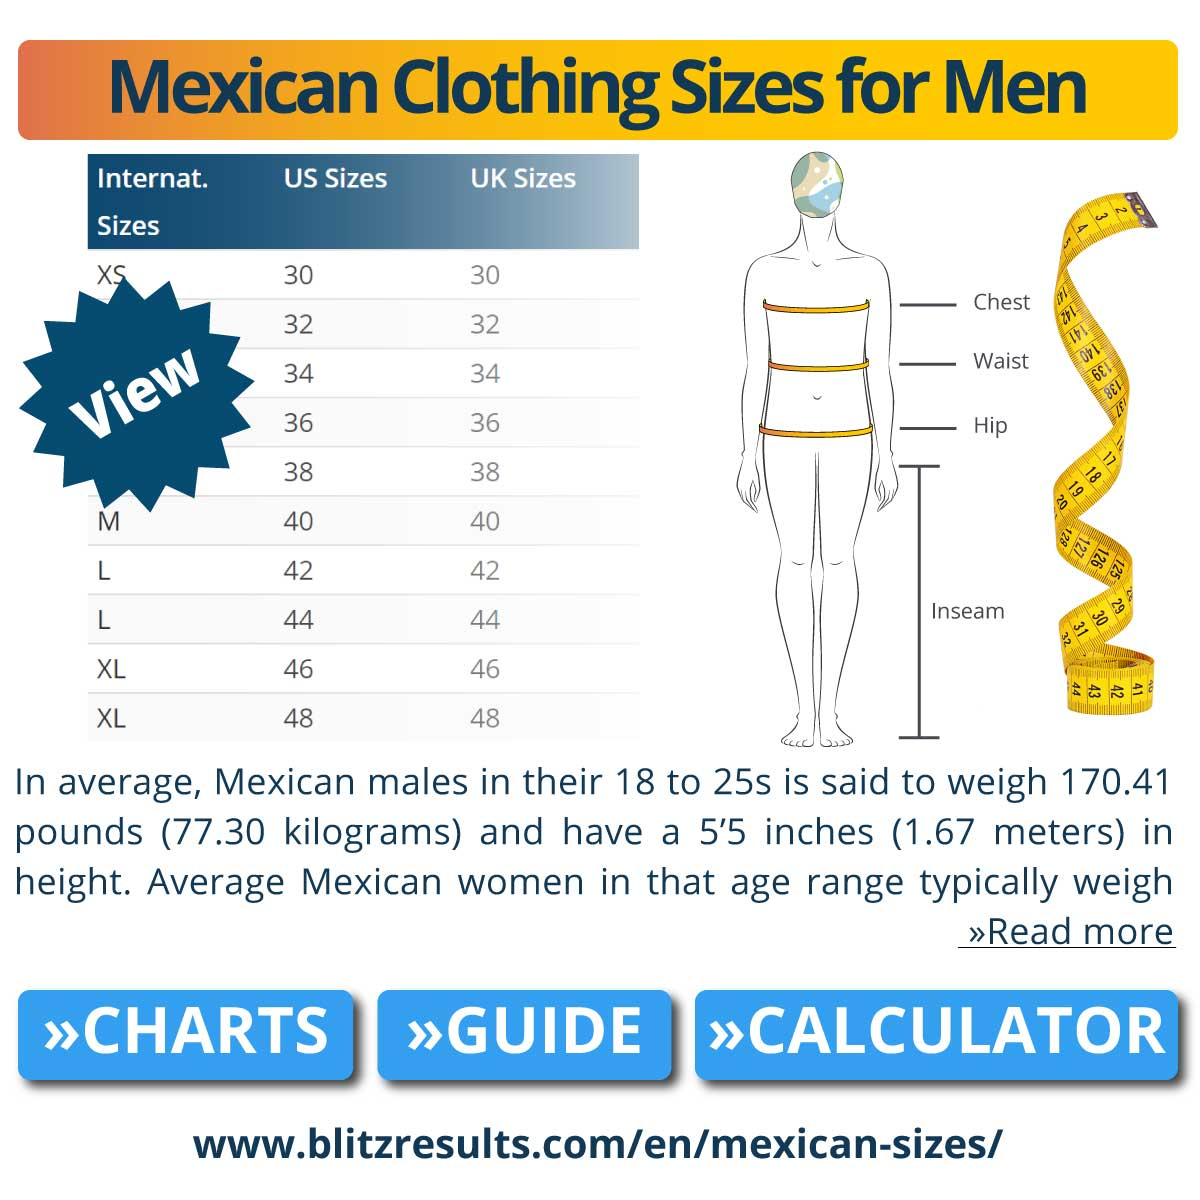 Mexican Clothing Sizes for Men